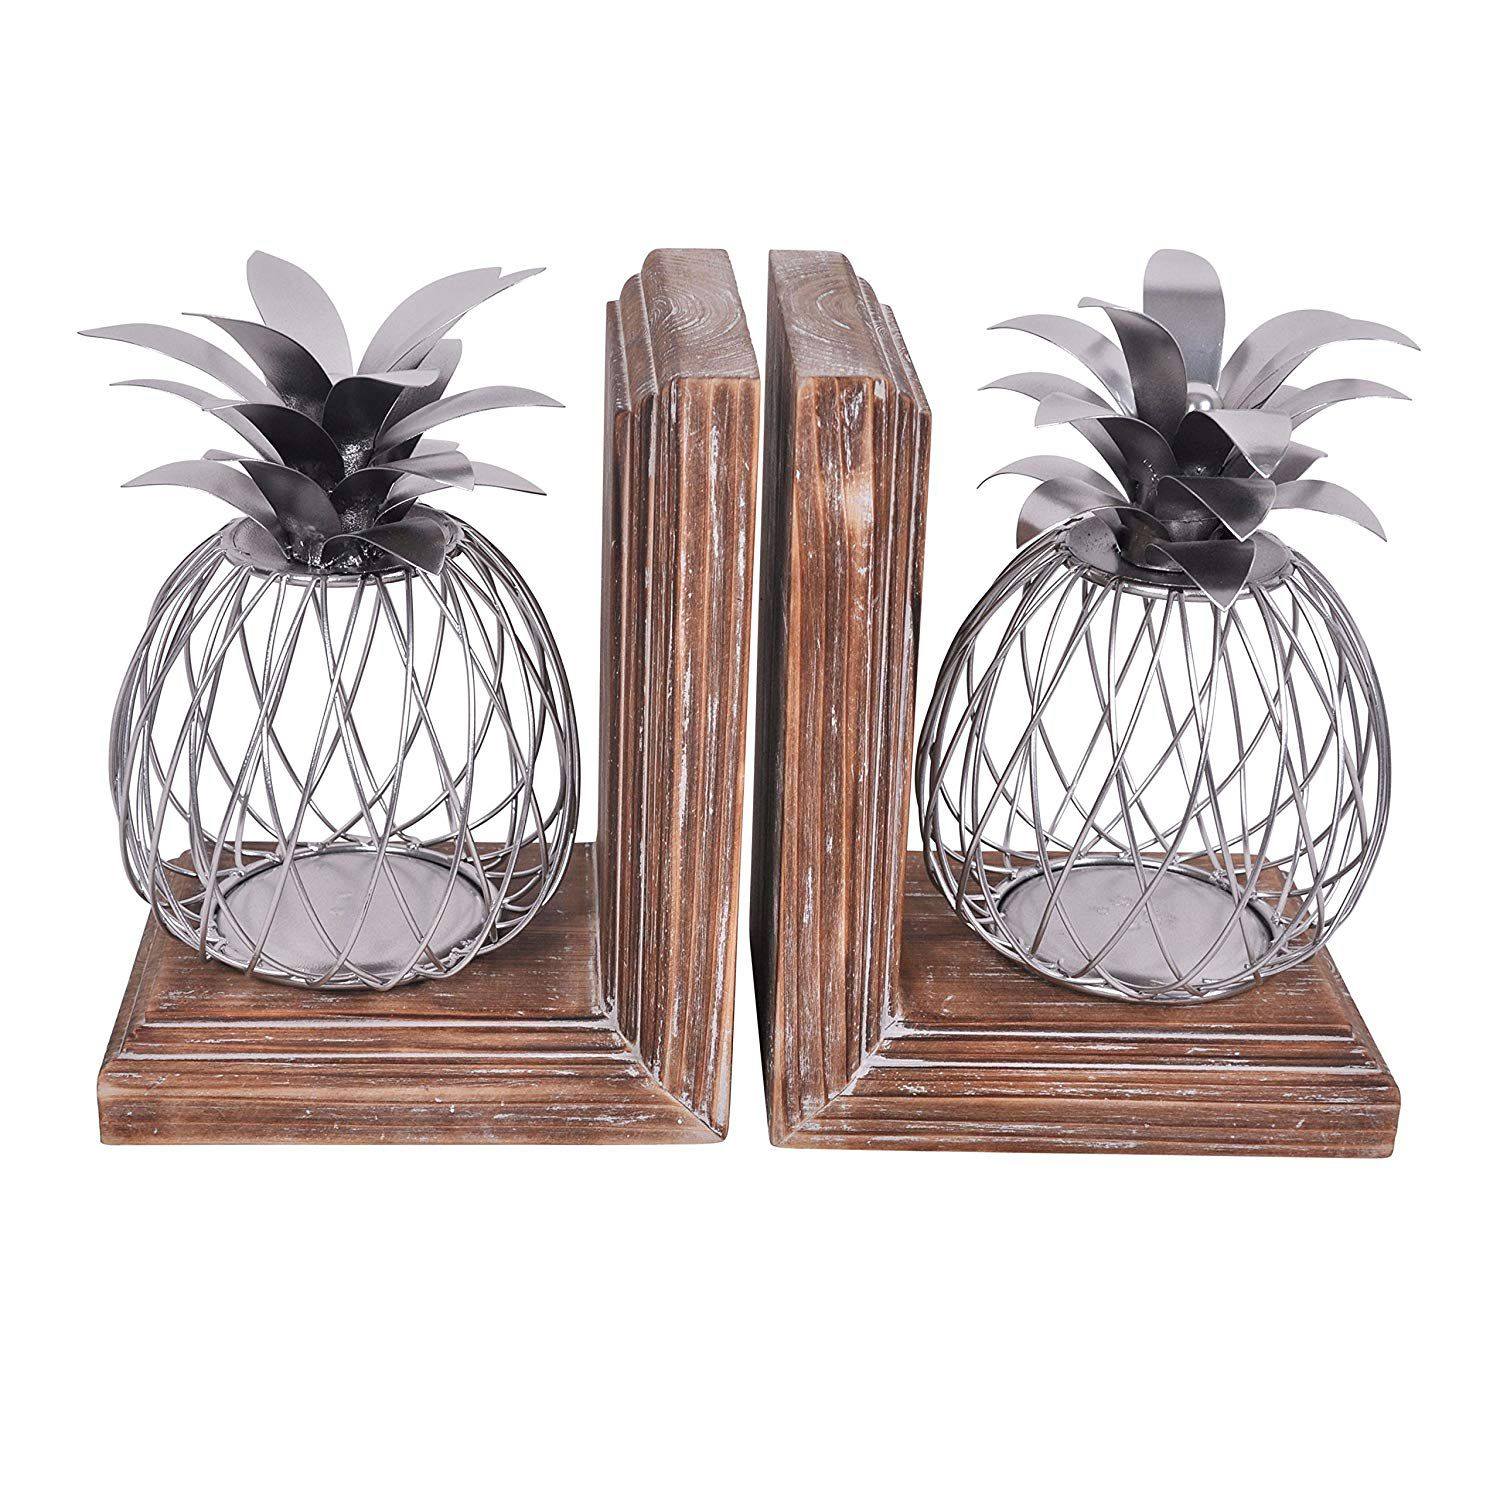 Iron pineapple bookends